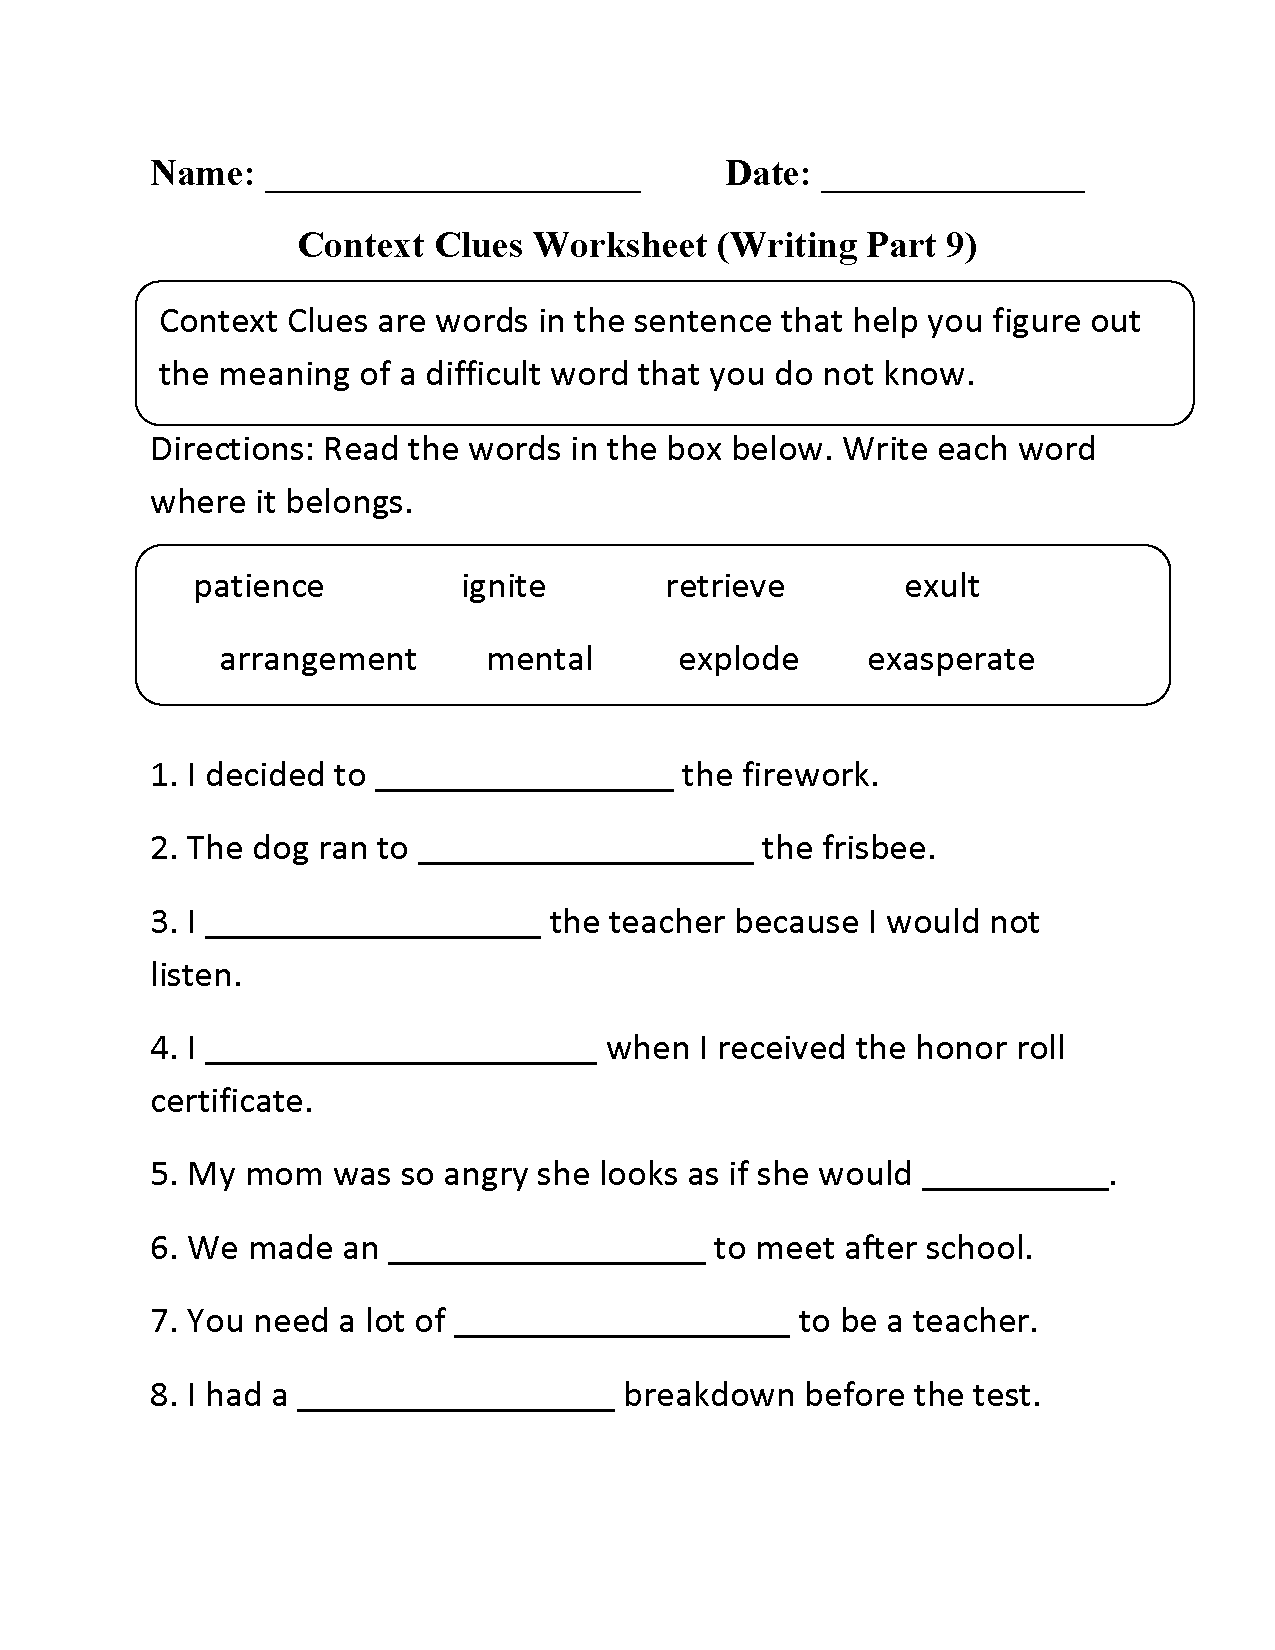 Worksheet Homophones Worksheets Pdf worksheet homophones worksheets pdf mikyu free 1000 images about context clues on pinterest